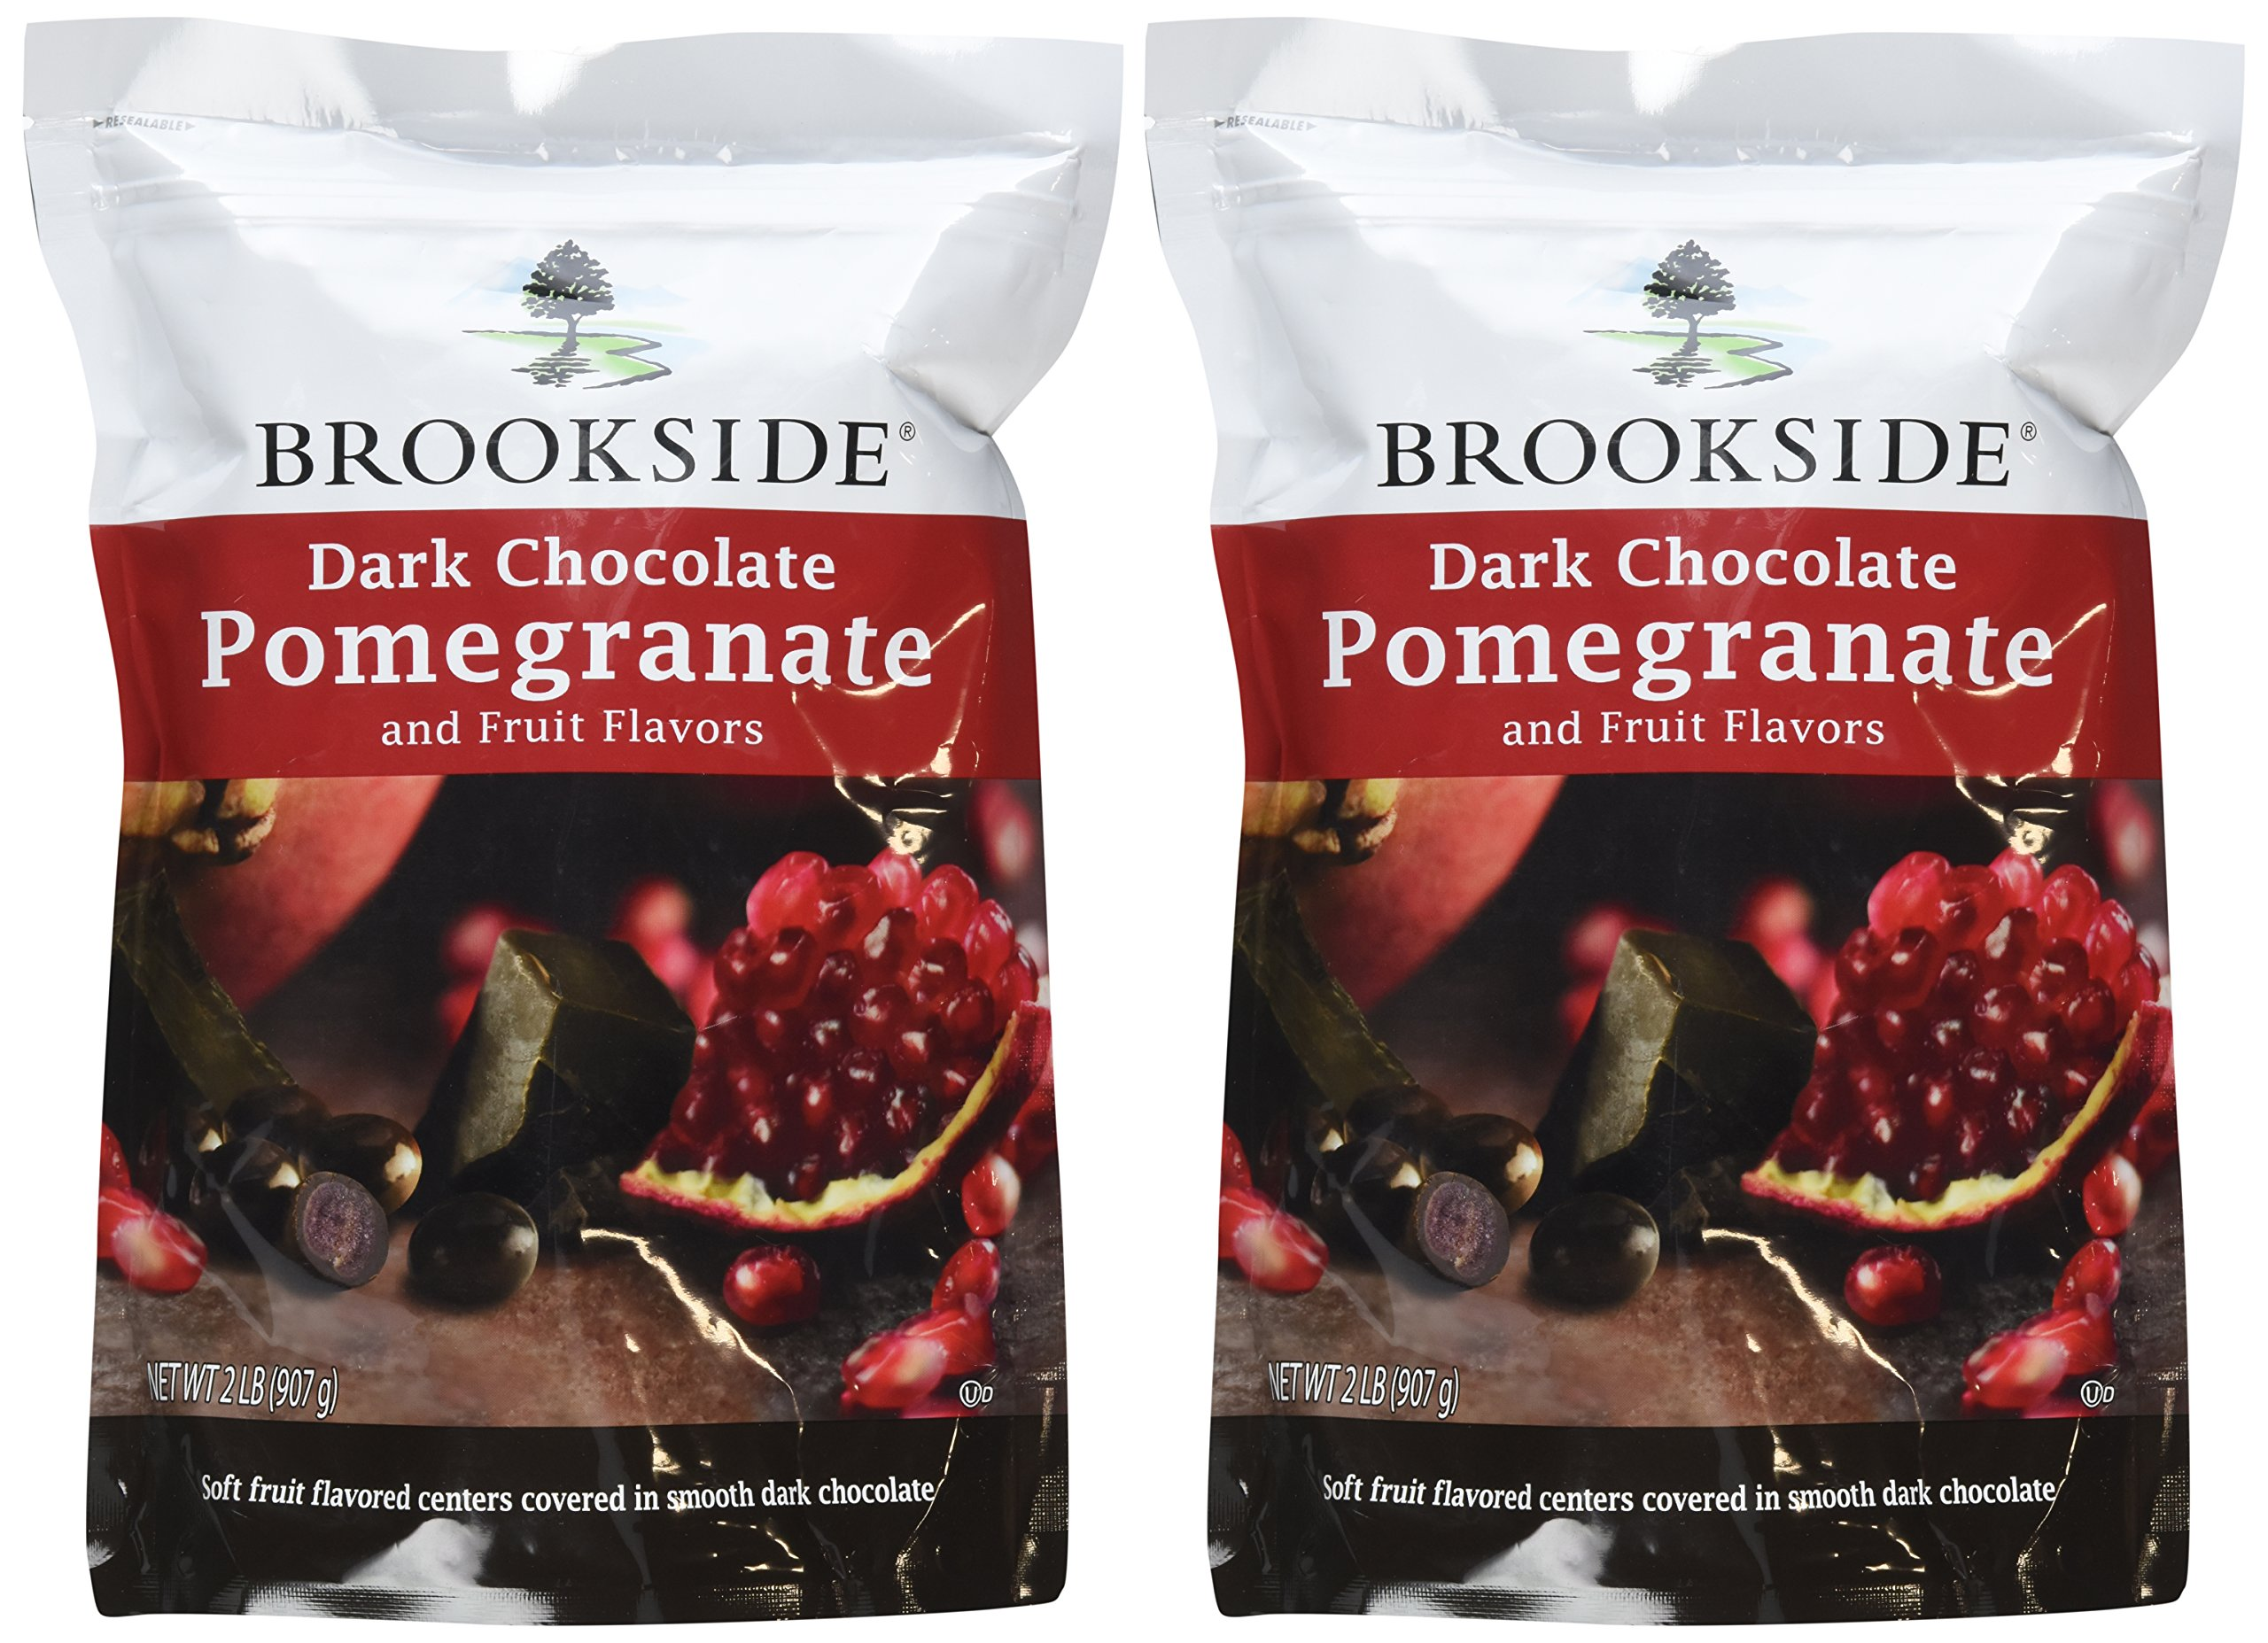 Brookside Dark Chocolate Pomegranate and Fruit Flavors Candy, 32-Ounce Bag (Pack of 2) by Brookside (Image #2)